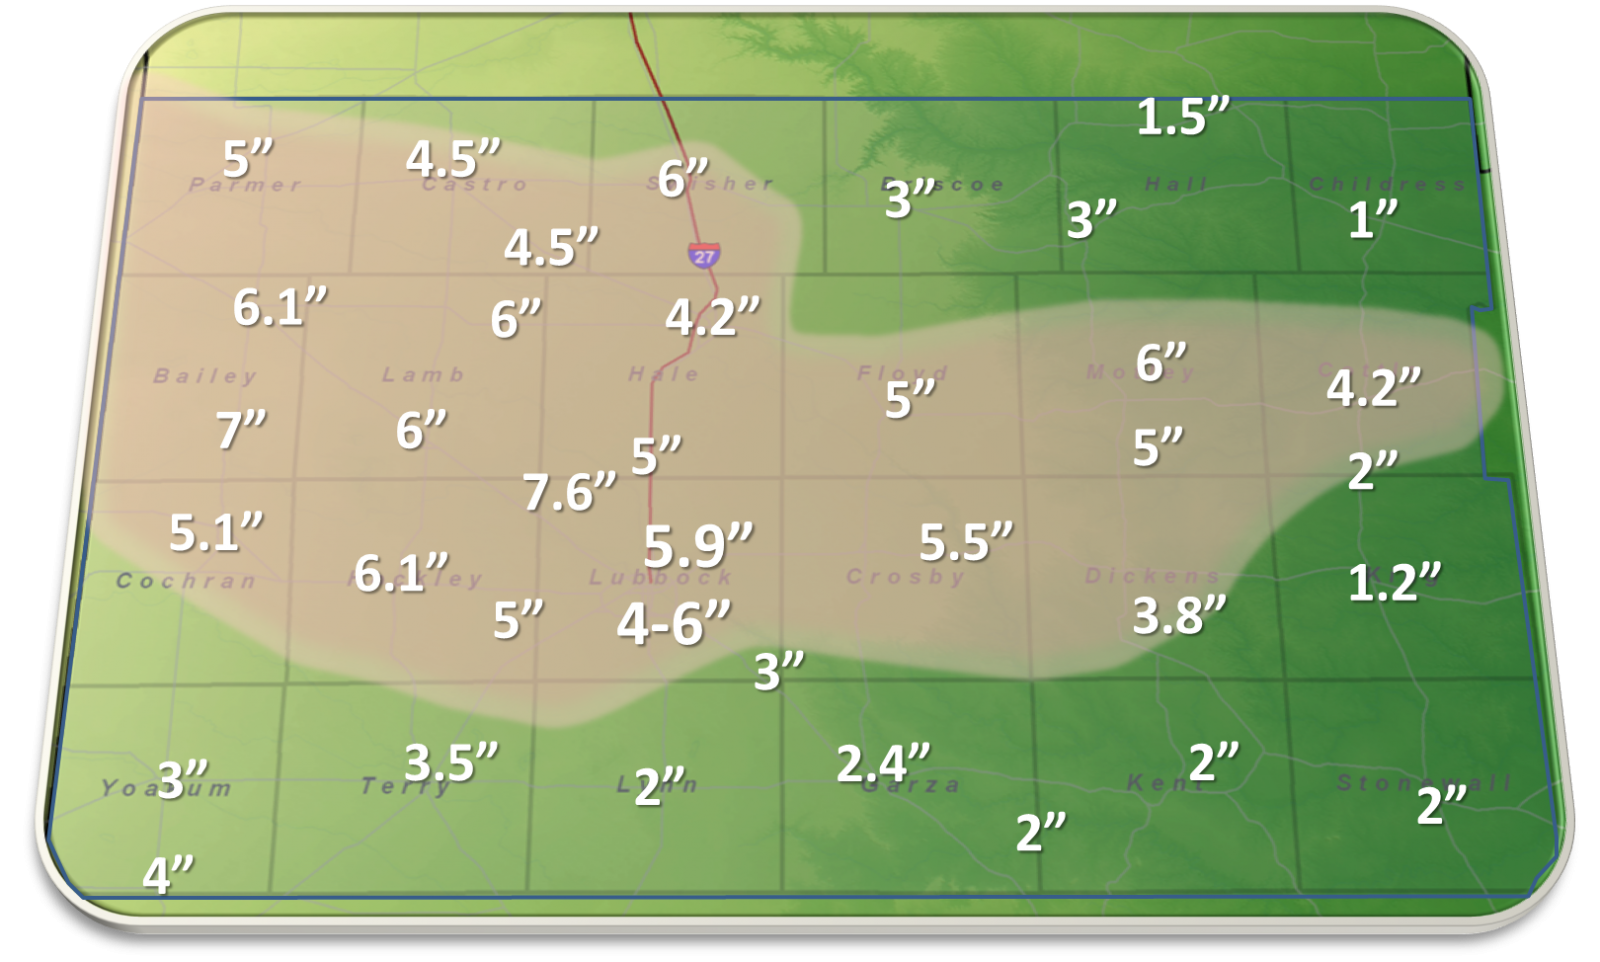 Snowfall totals for Feb 26-28 as reported to our office.